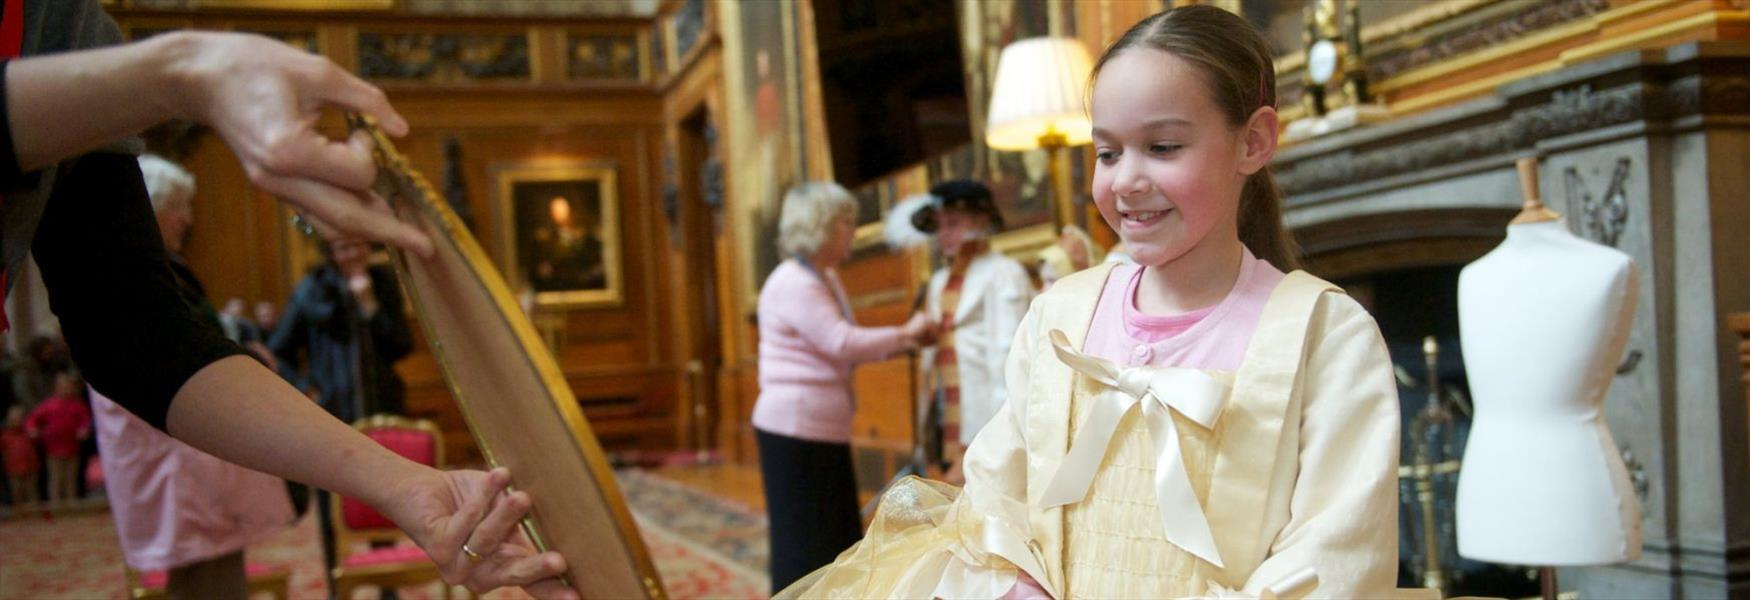 Enjoy Family Activities at Windsor Castle